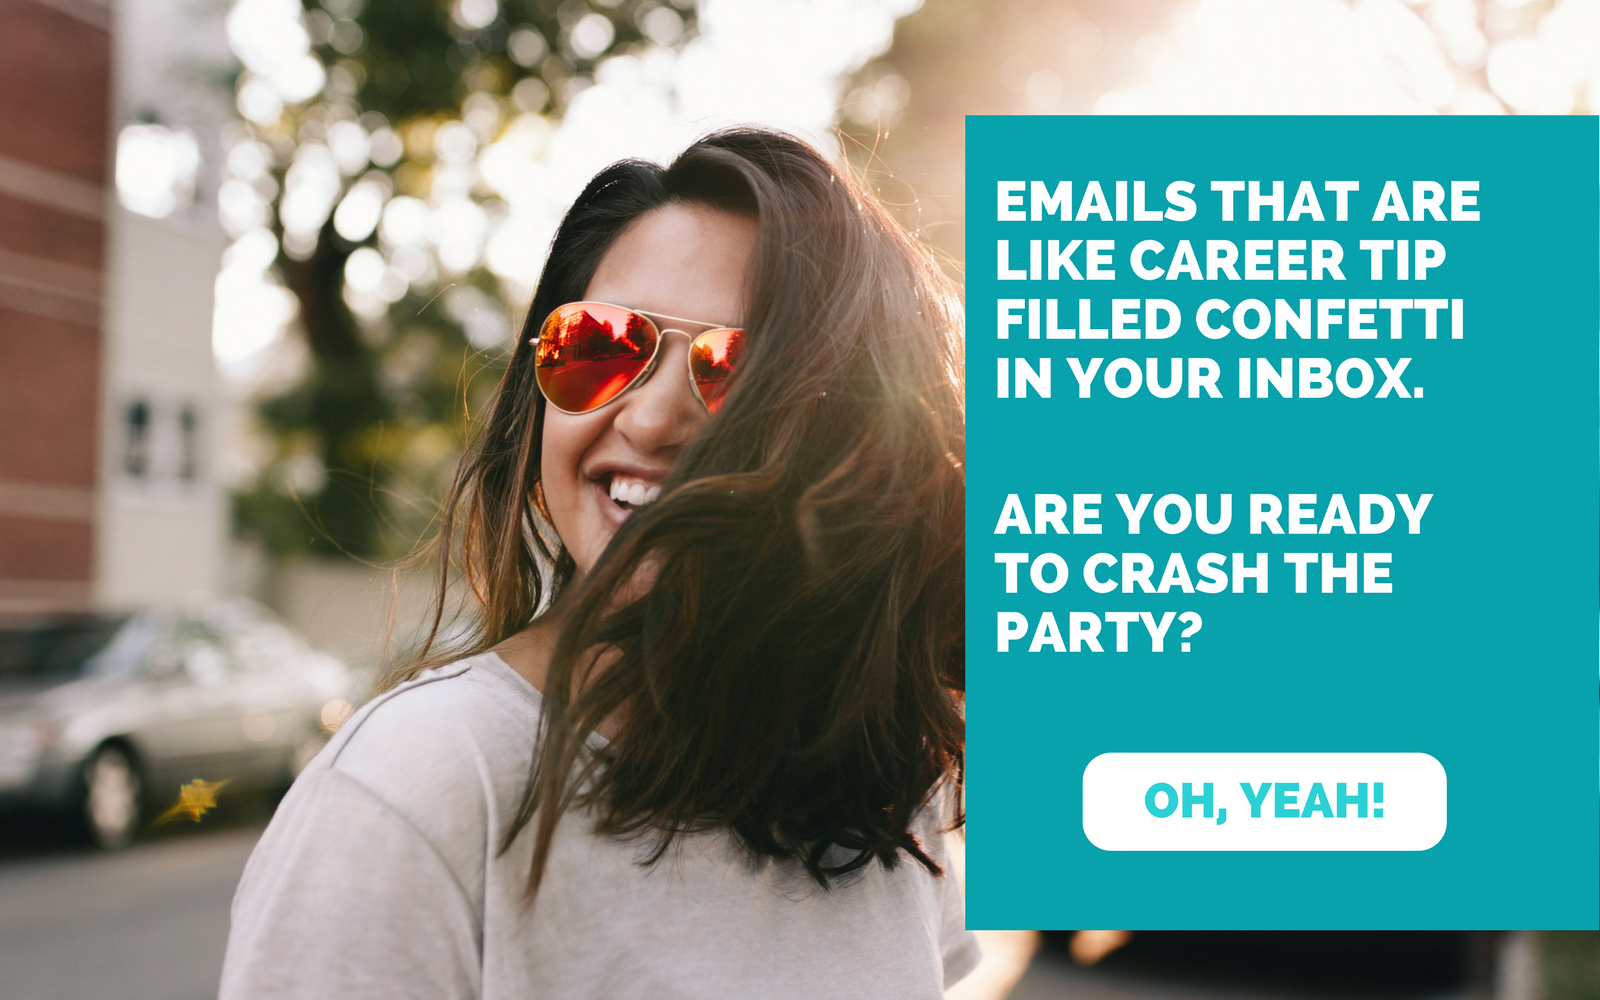 Career-filled confetti in your inbox.